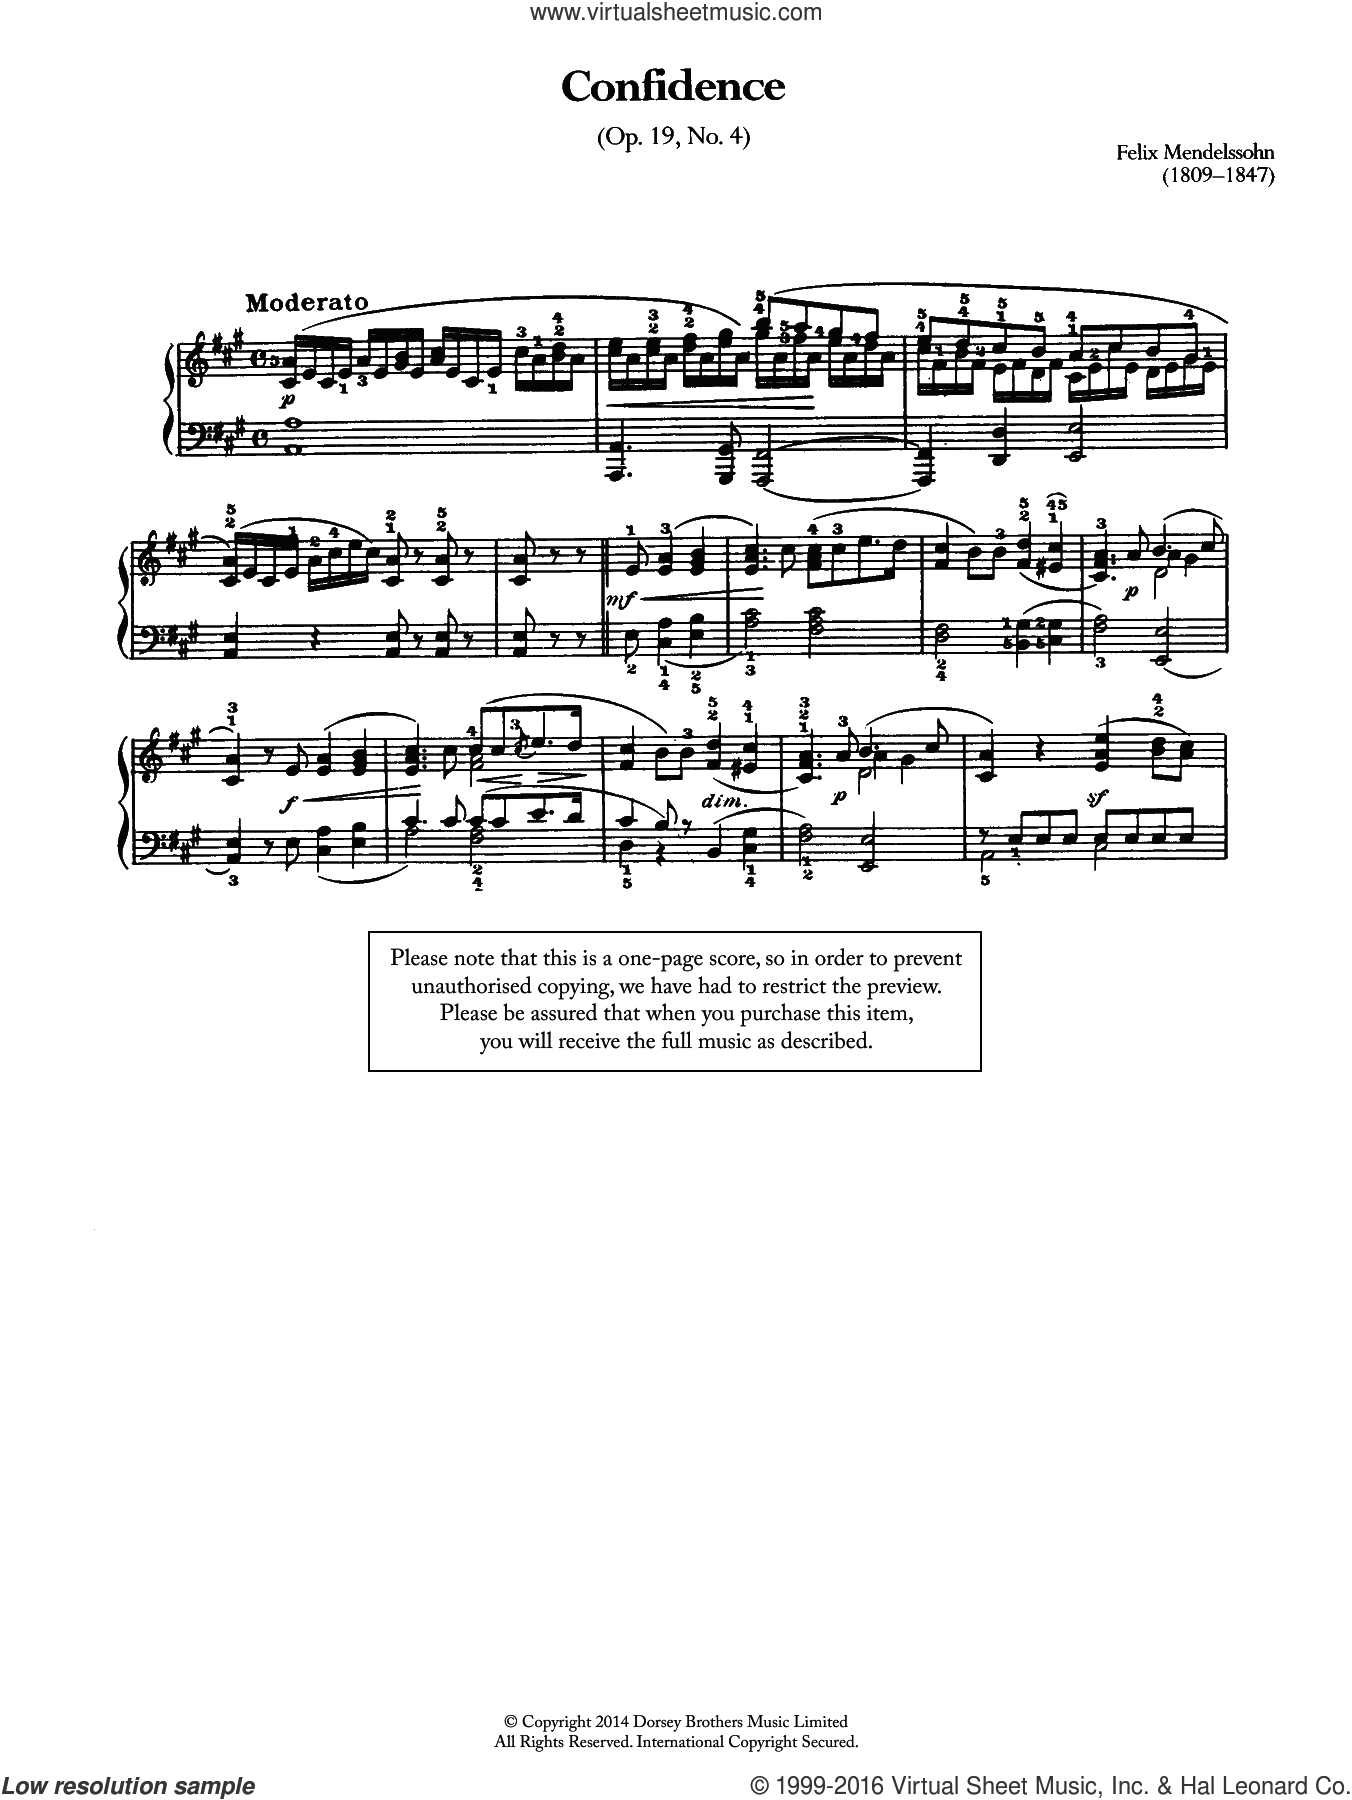 Confidence Op.19, No.4 sheet music for piano solo by Felix Mendelssohn-Bartholdy, classical score, intermediate skill level